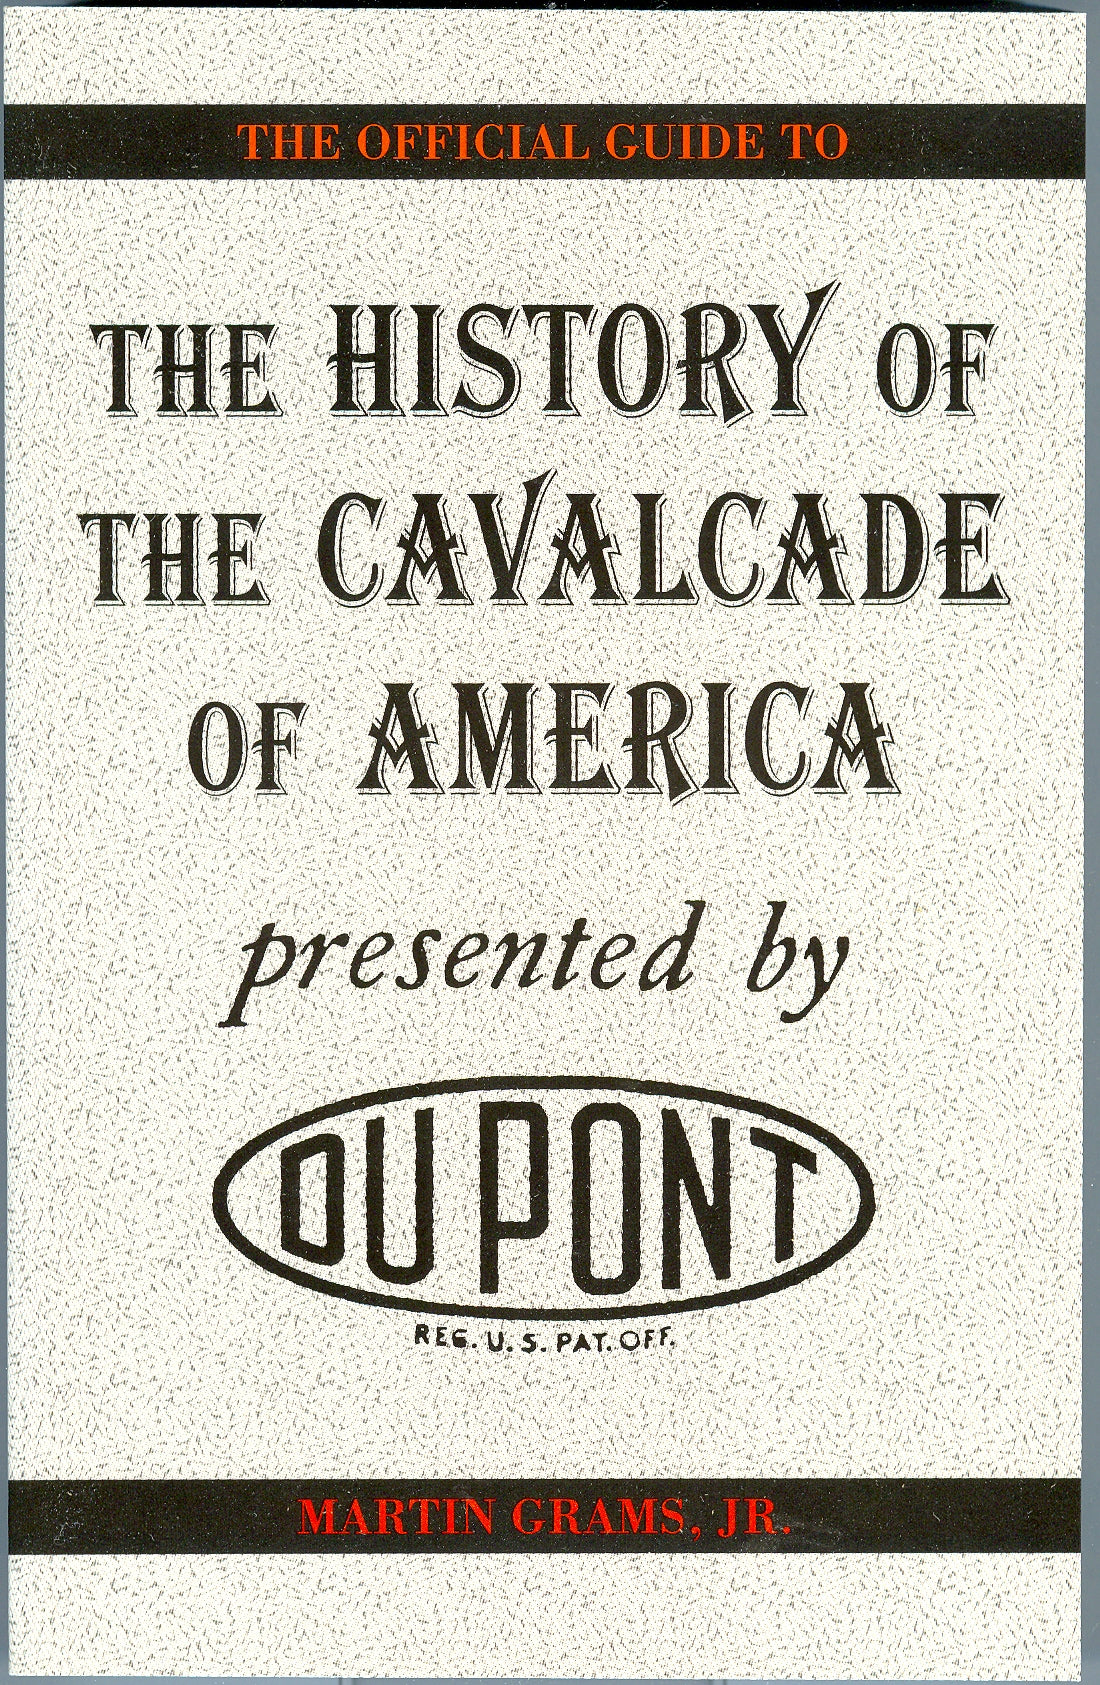 THE HISTORY OF THE CAVALCADE OF AMERICA